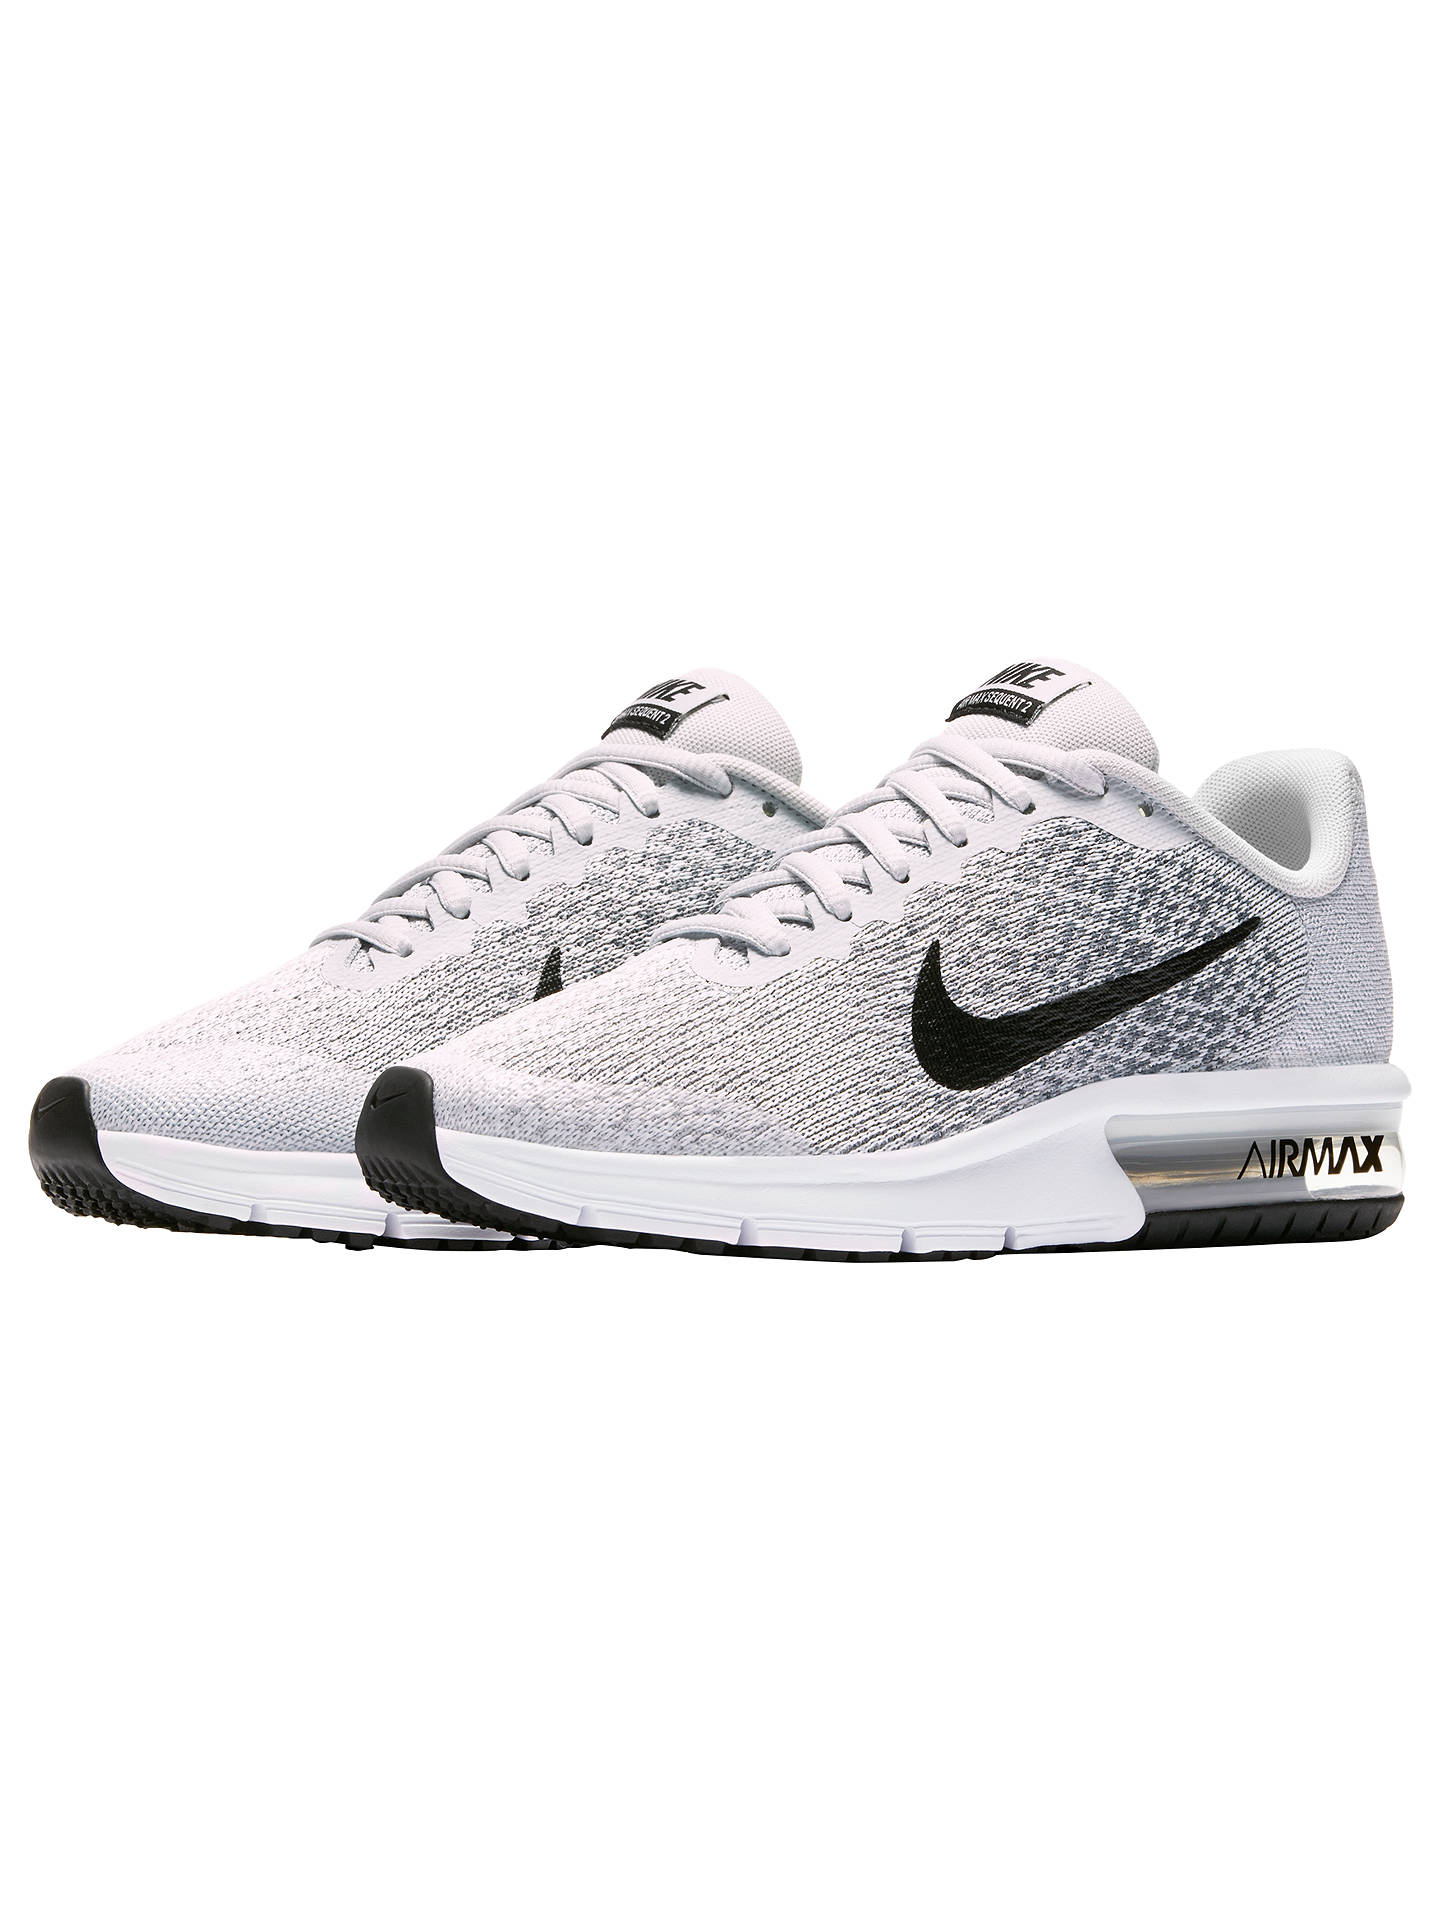 Nike Children's Air Max Sequent 2 Trainers, Grey Grey at